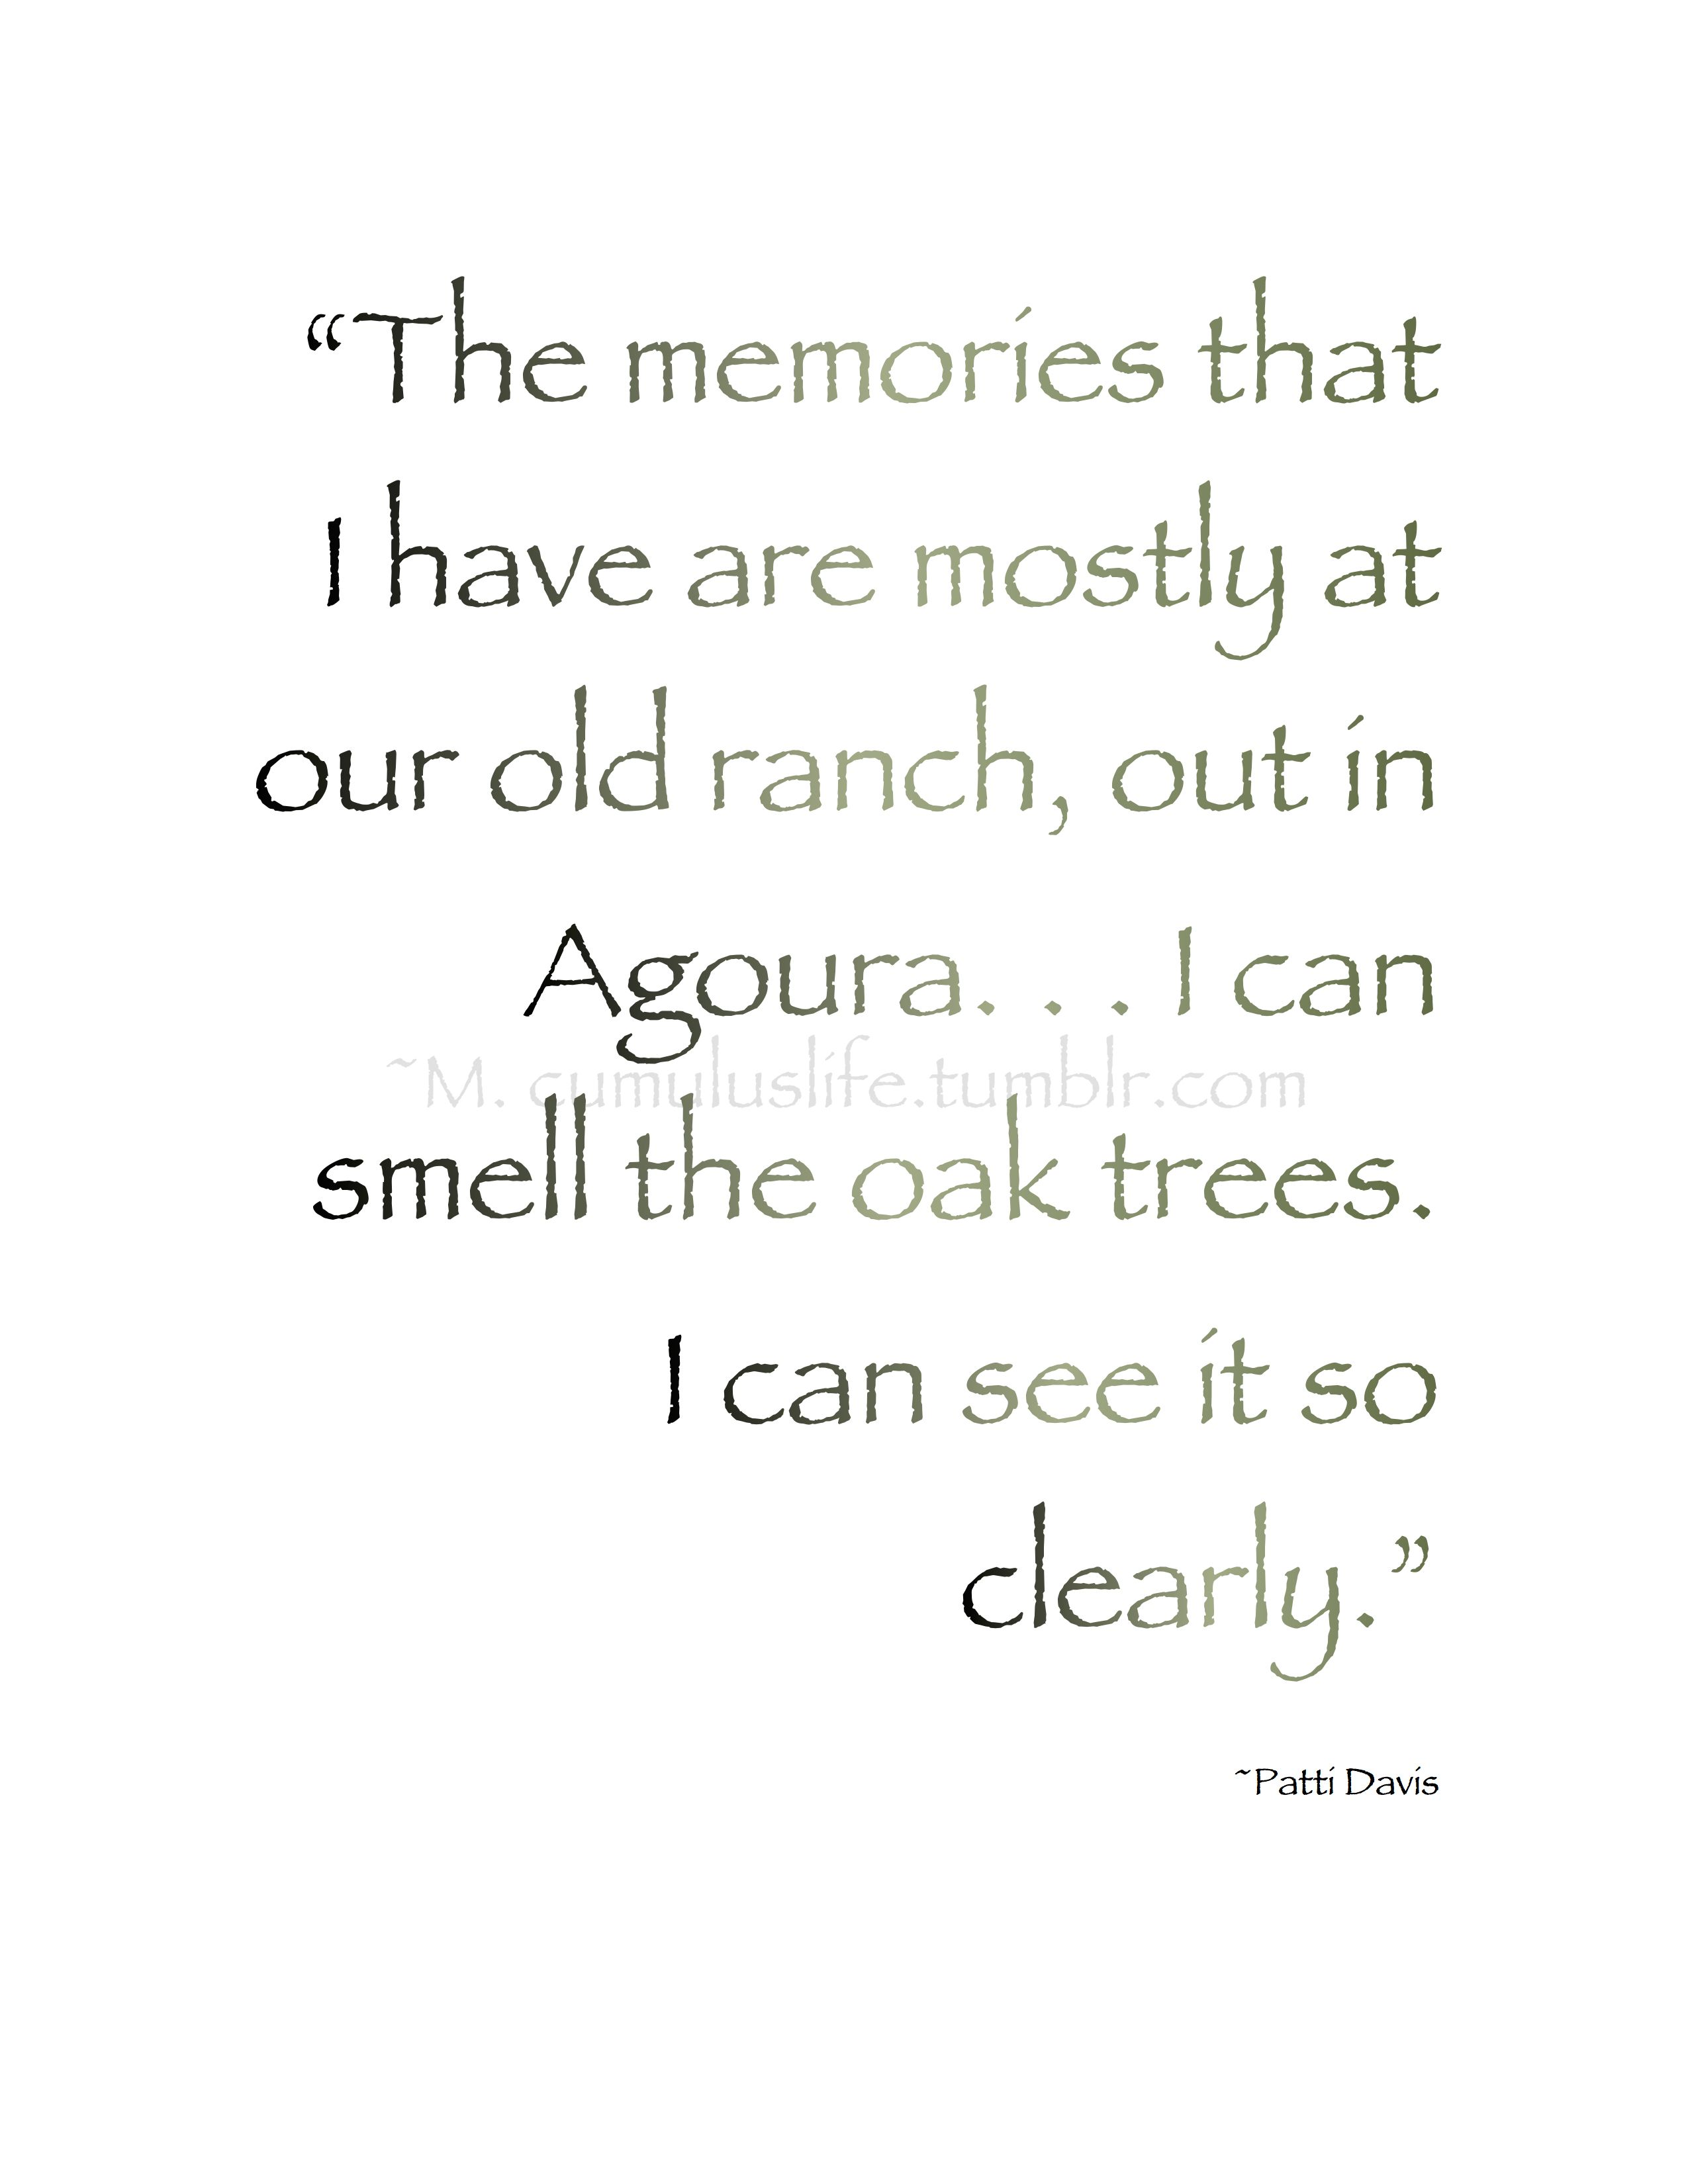 The memories that I have are mostly at our old ranch out in Agoura